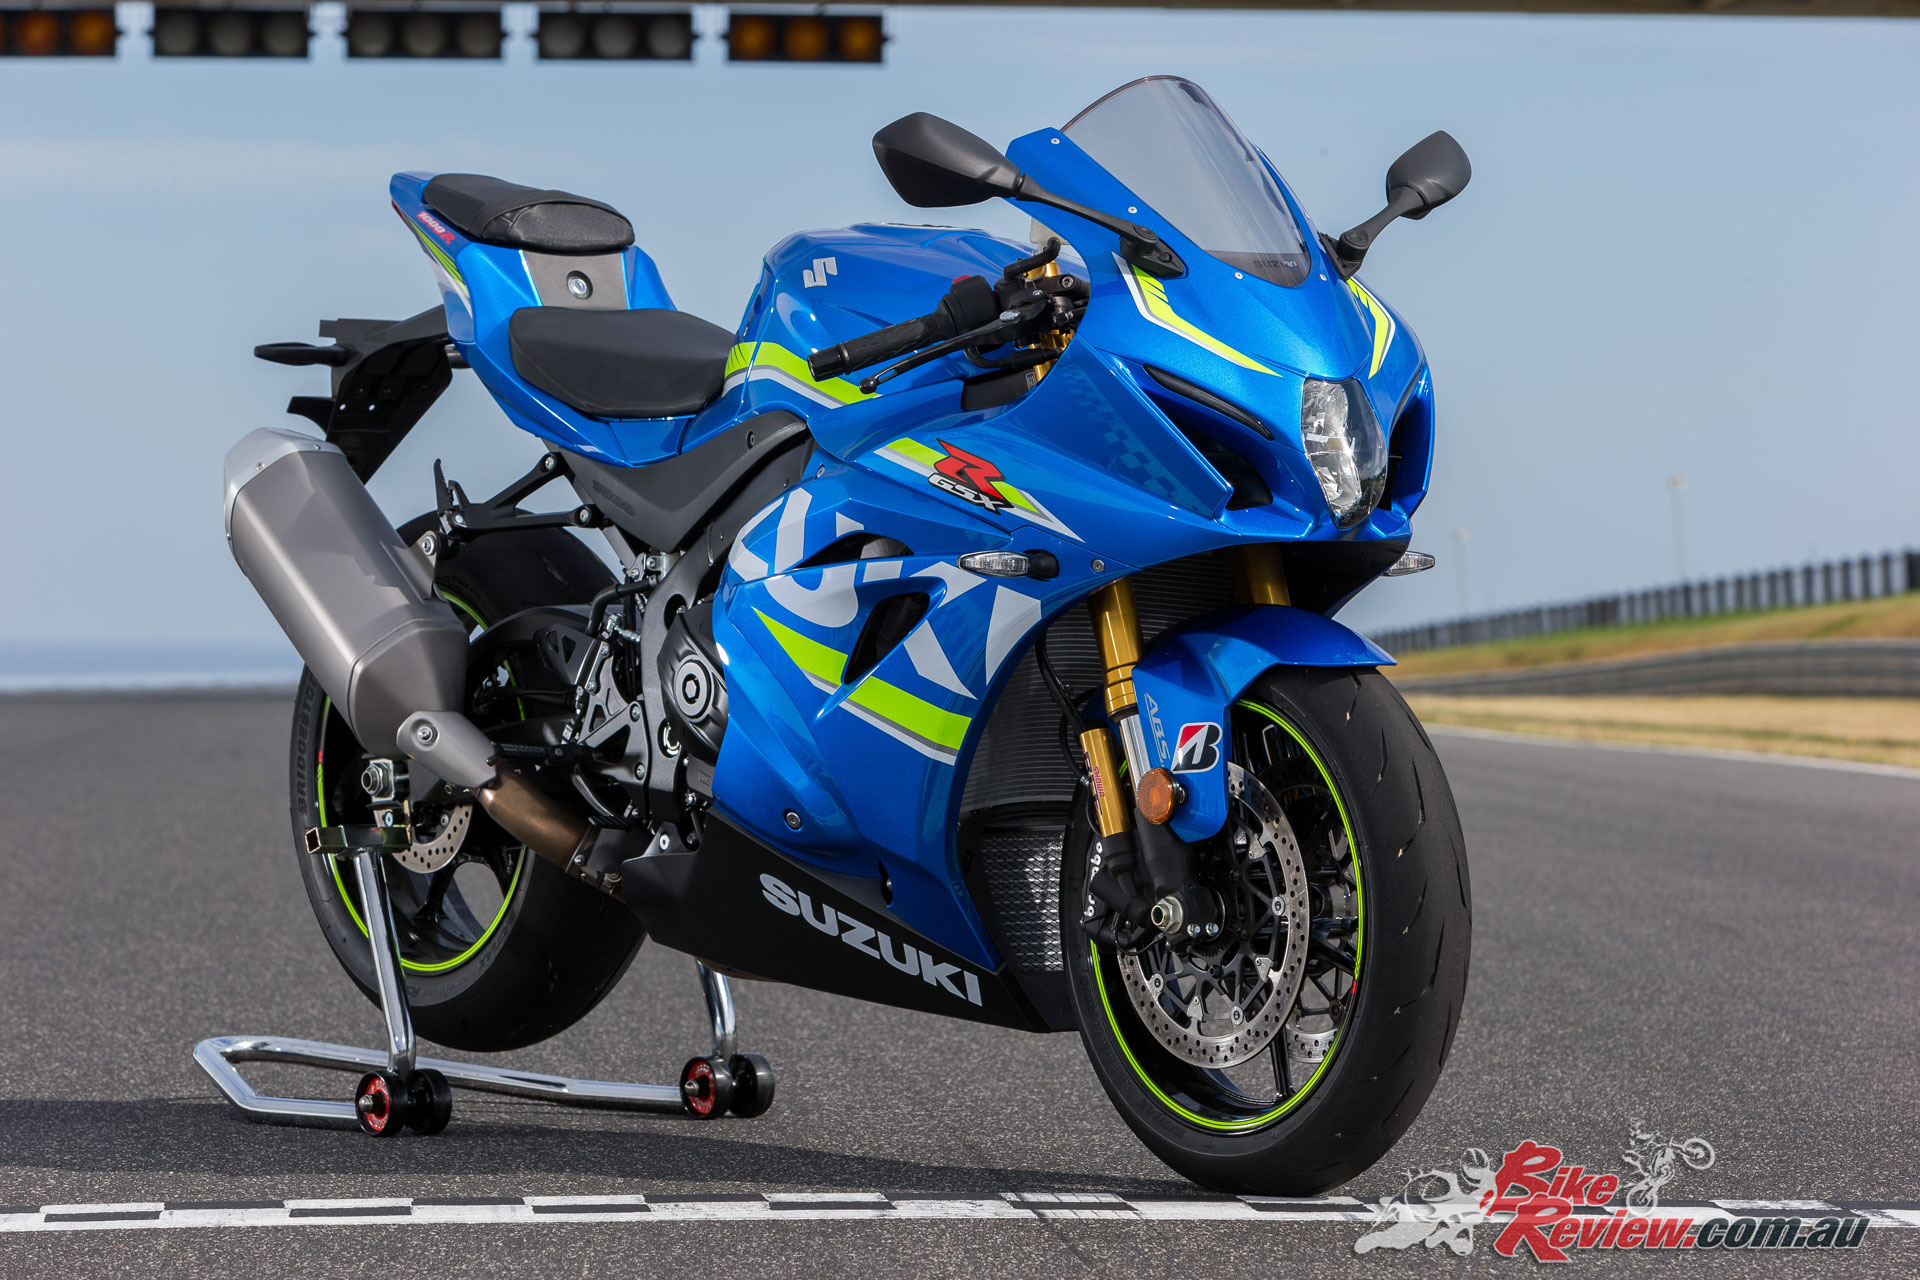 2018 suzuki gsx r1000r arrives september 7 bike review. Black Bedroom Furniture Sets. Home Design Ideas